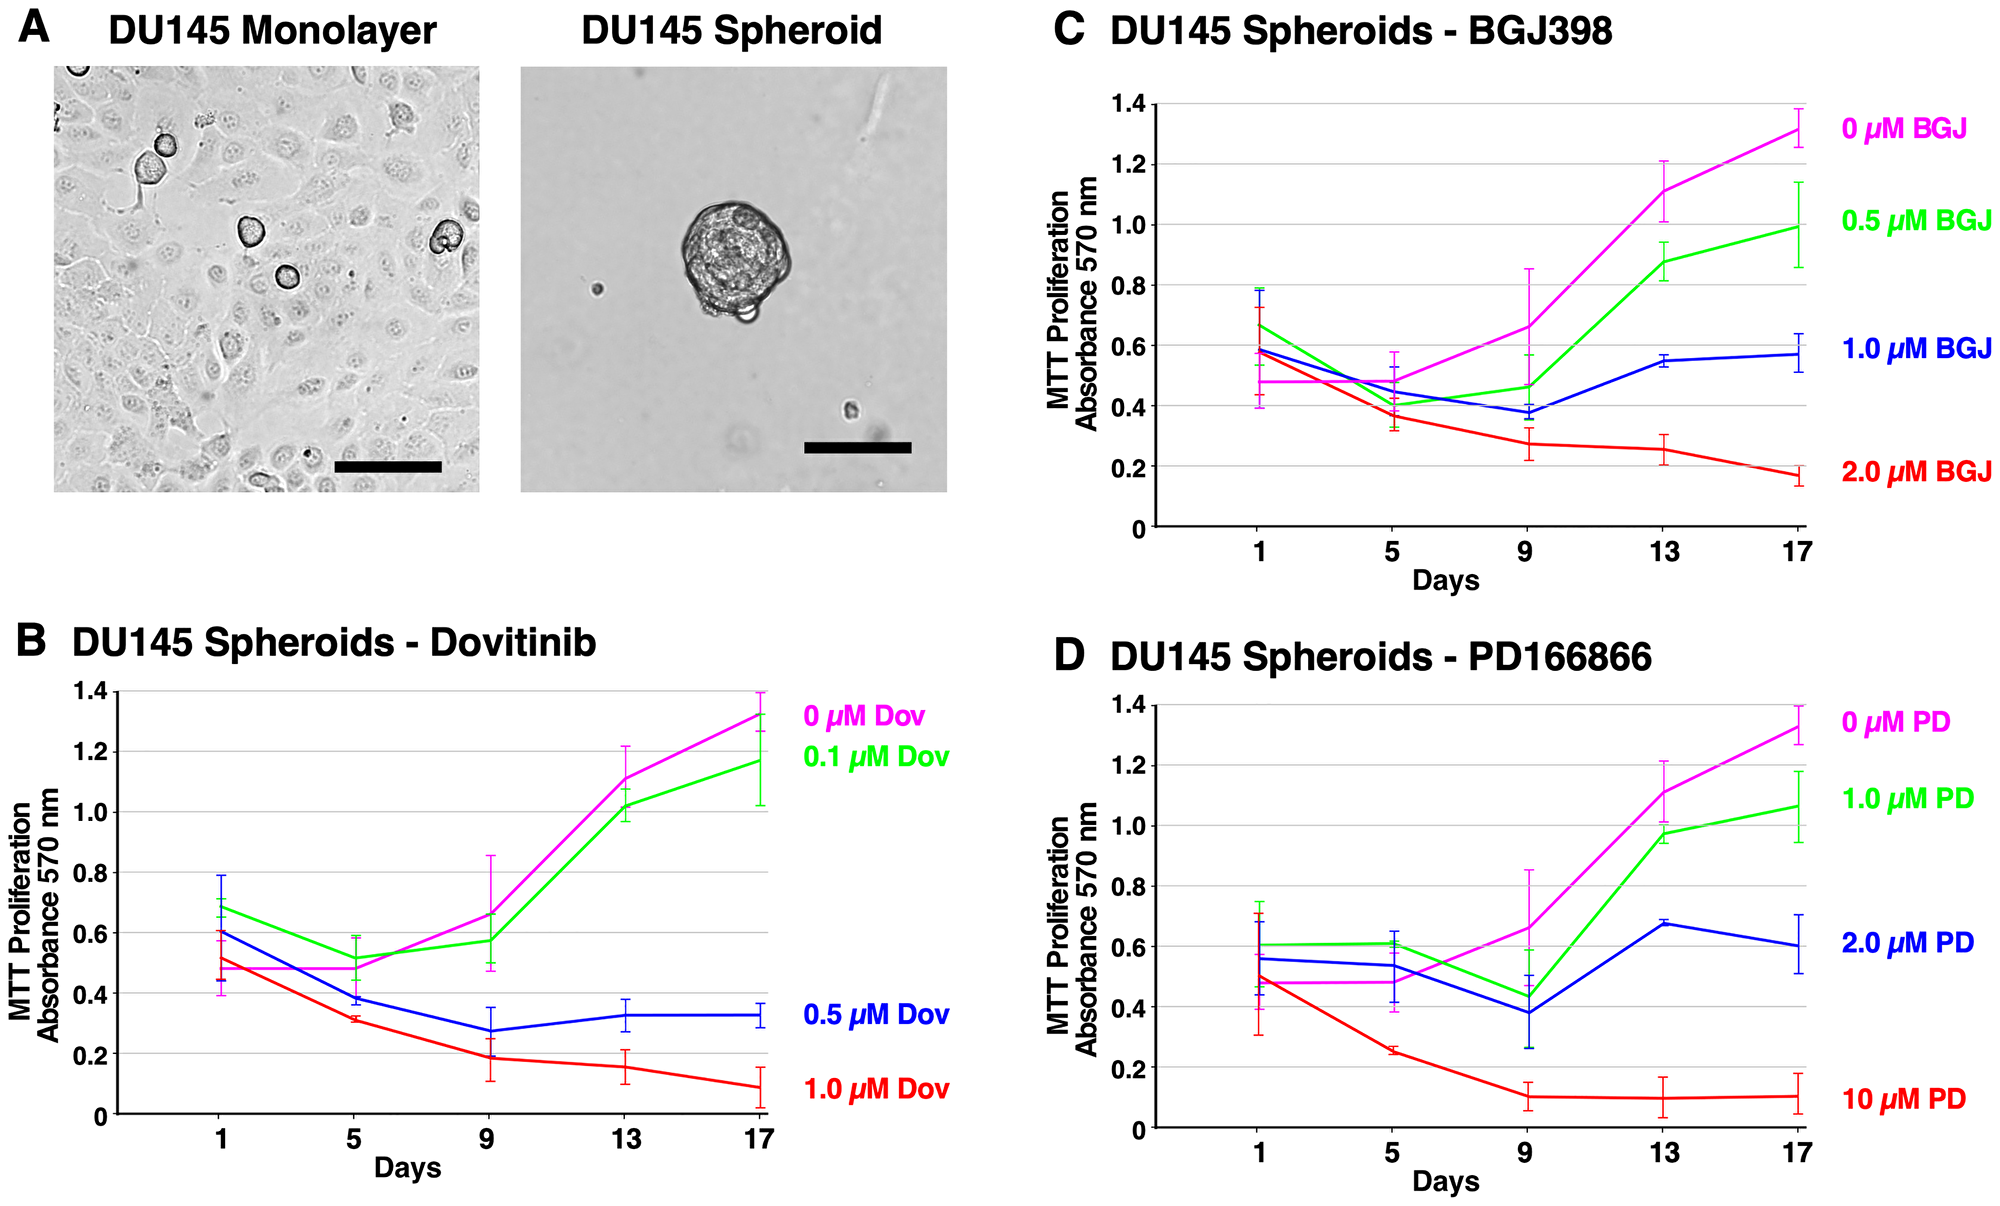 Formation of DU145 spheroids and inhibition of survival and growth via TKI treatment.